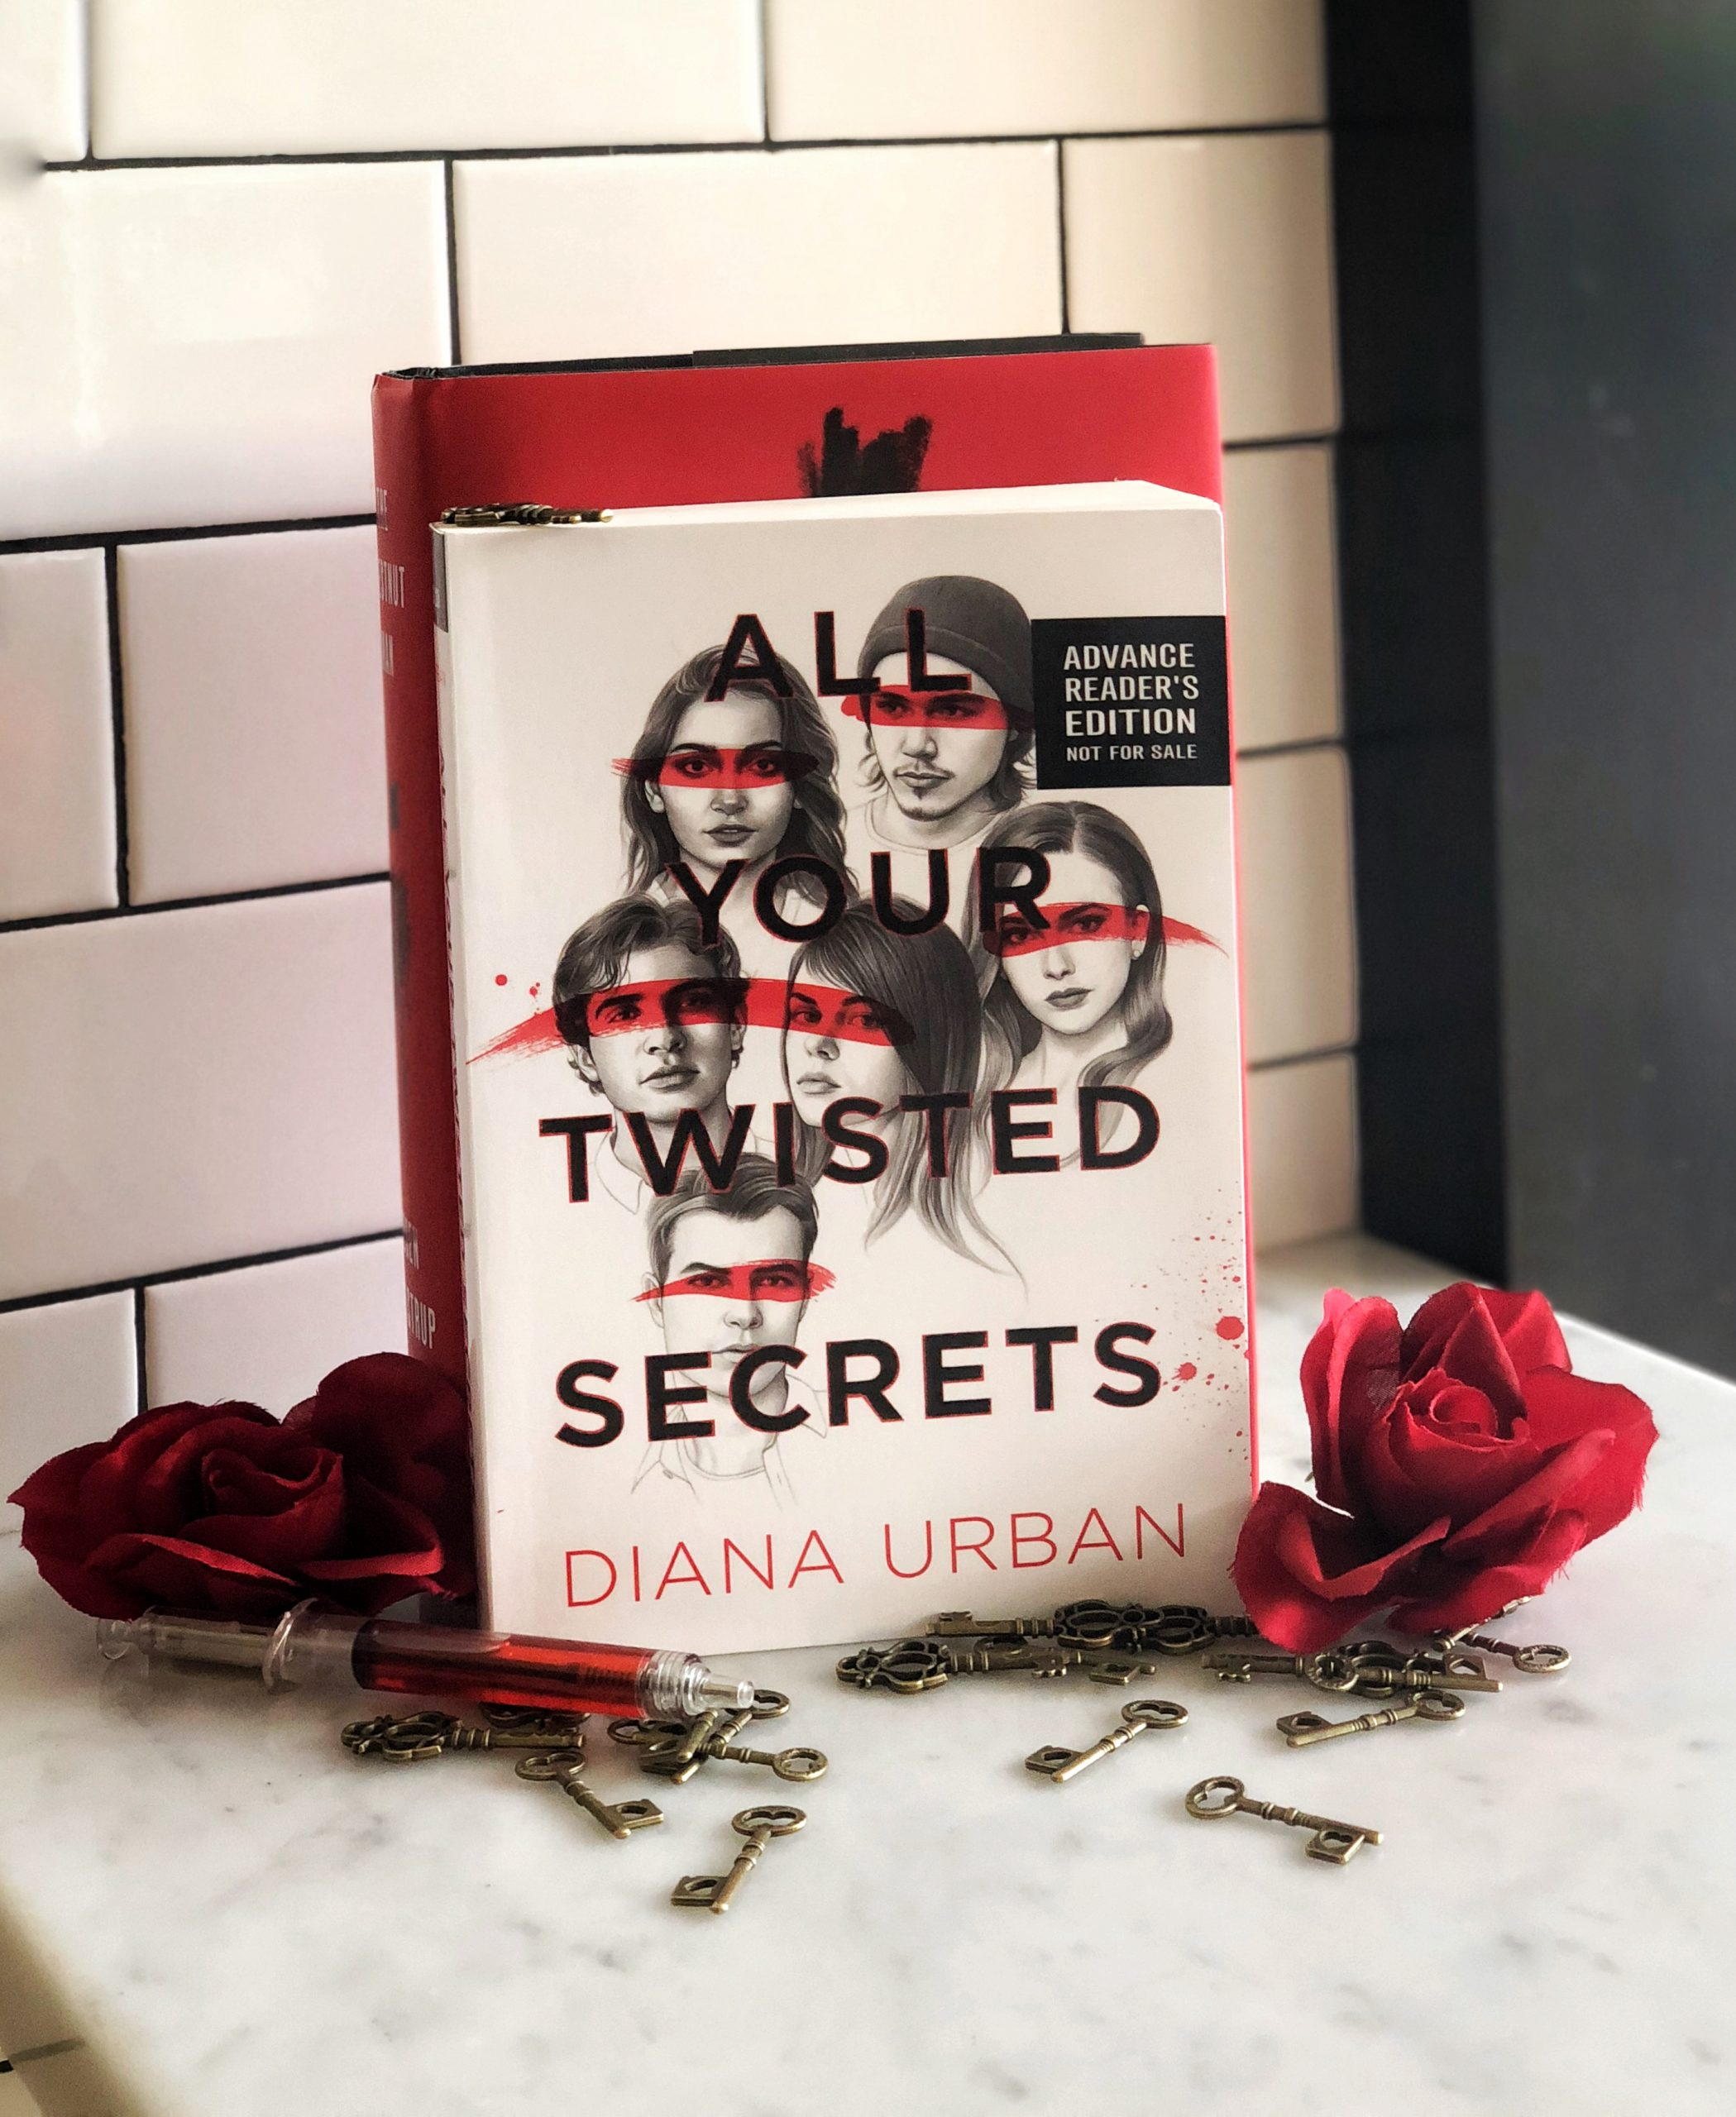 All Your Twisted Secrets - Moody with Flowers